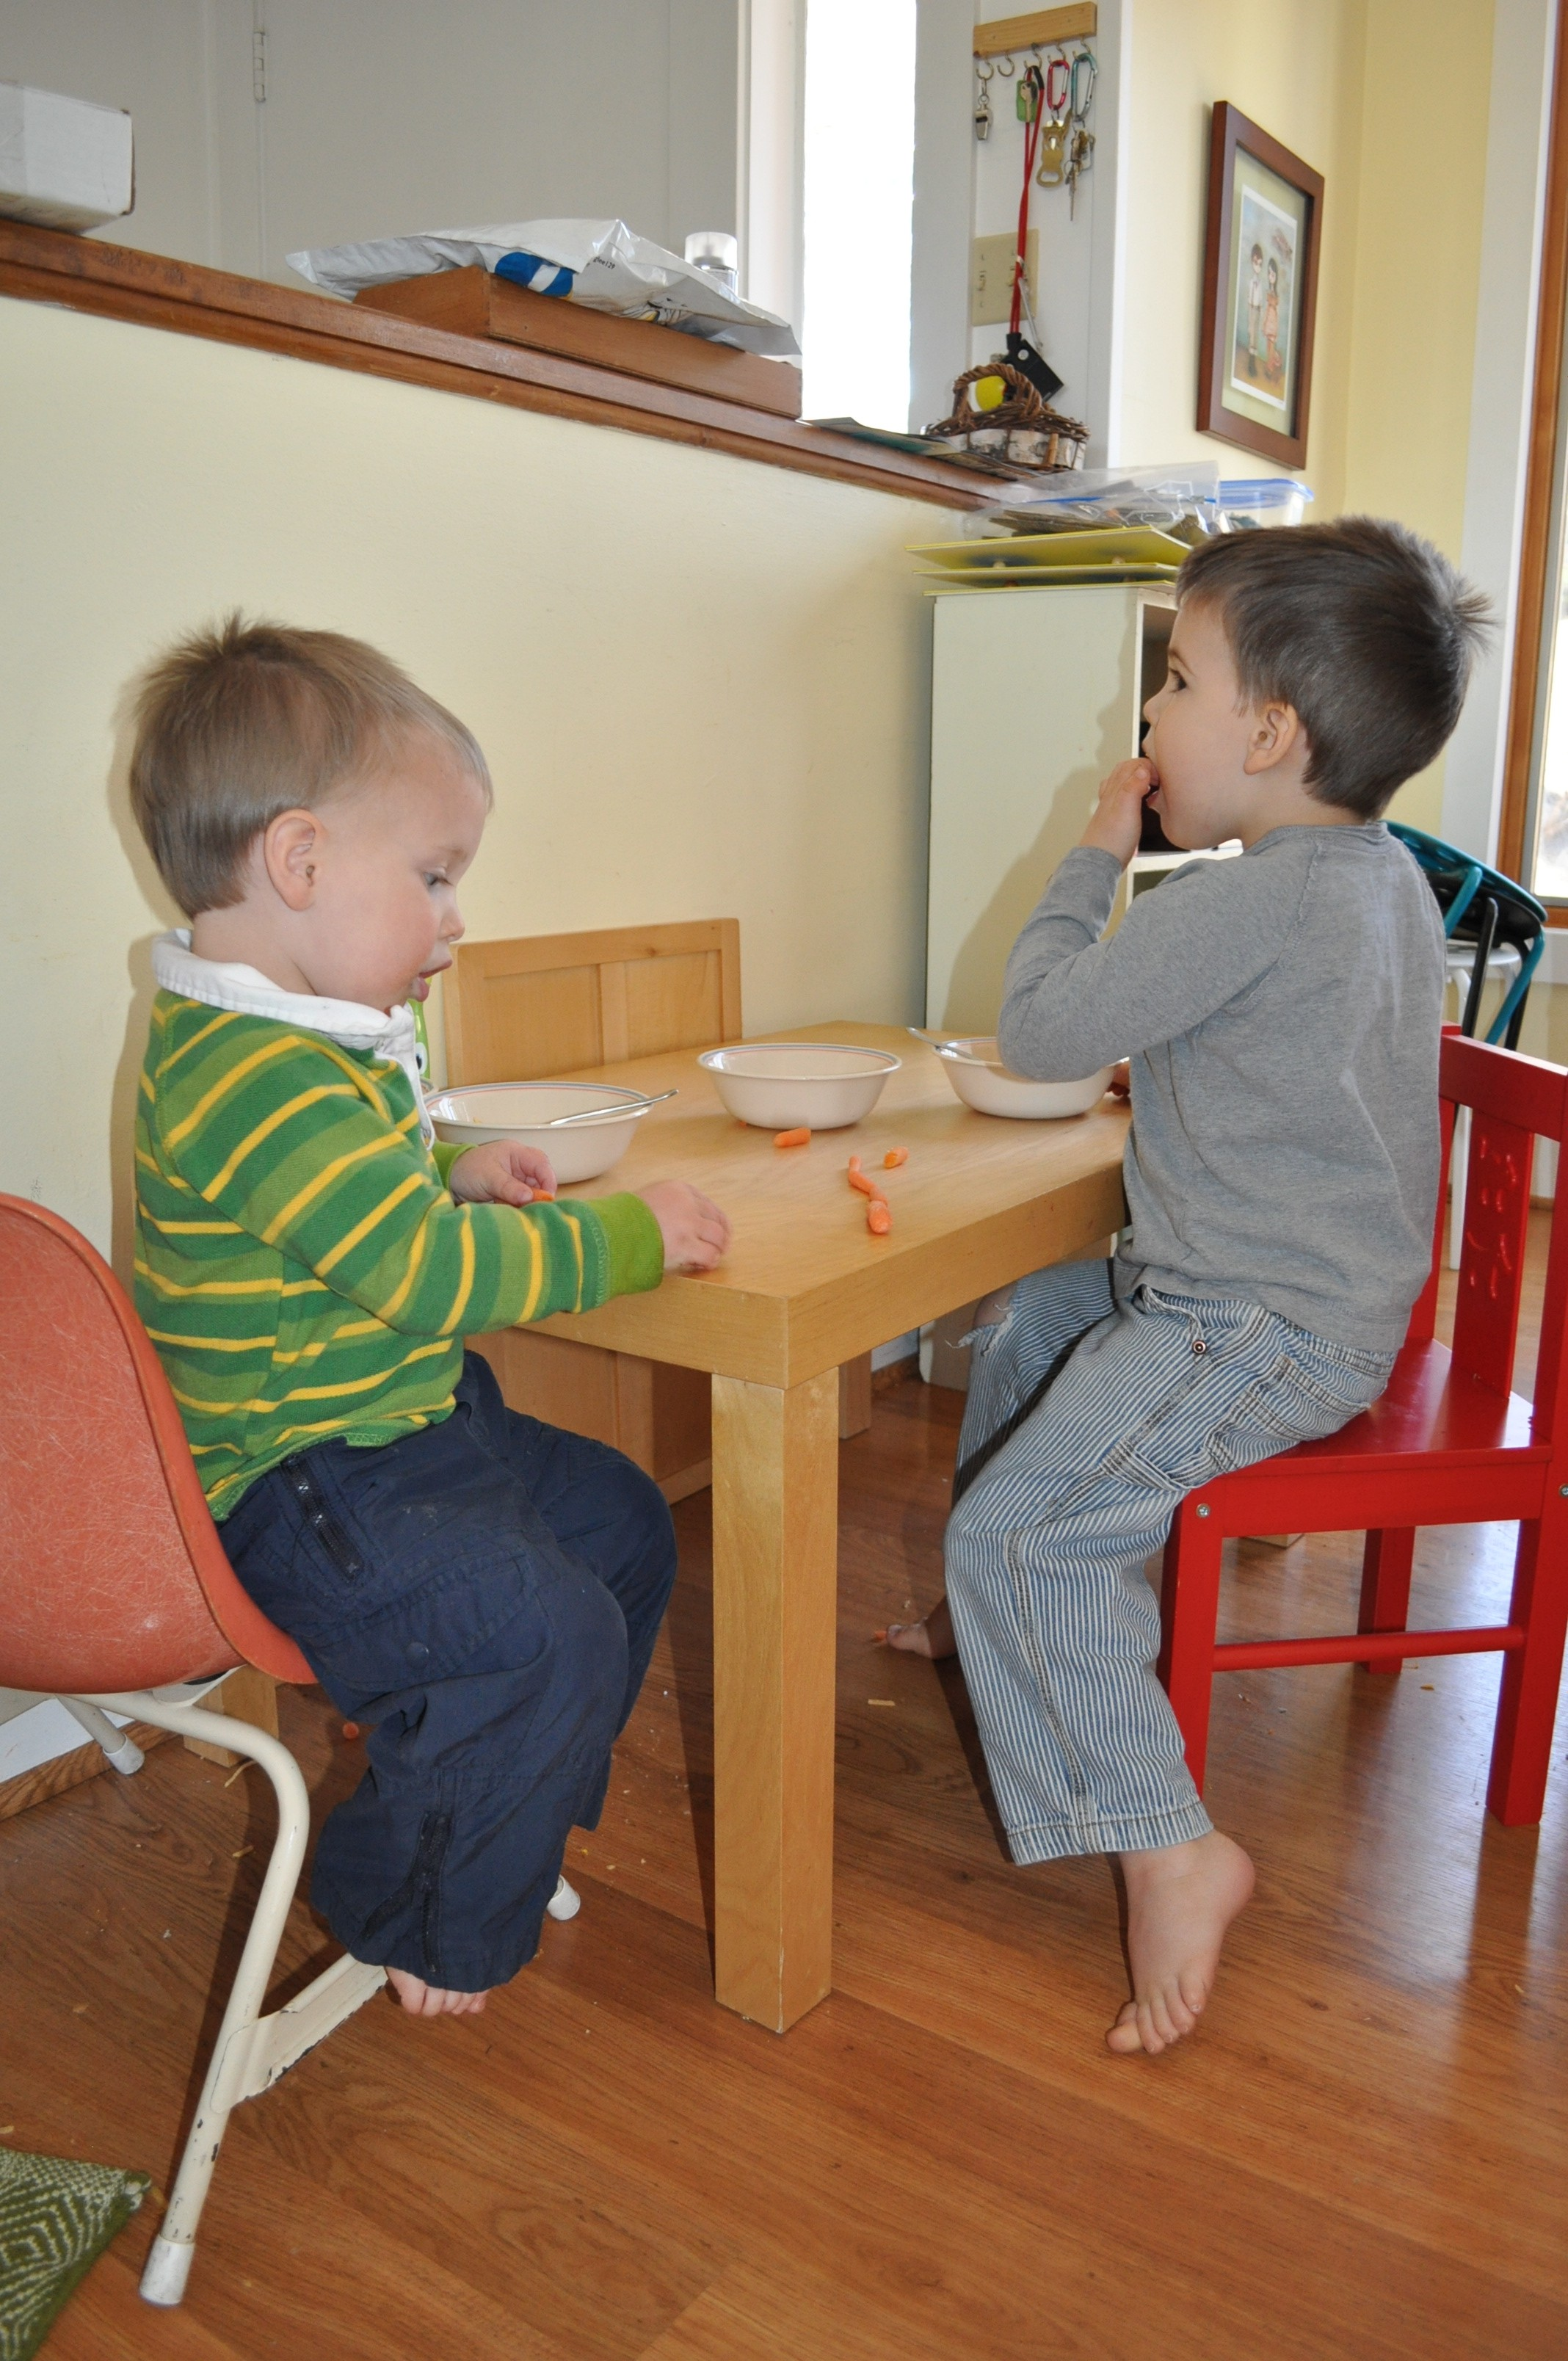 My kids eating lunch at their table.